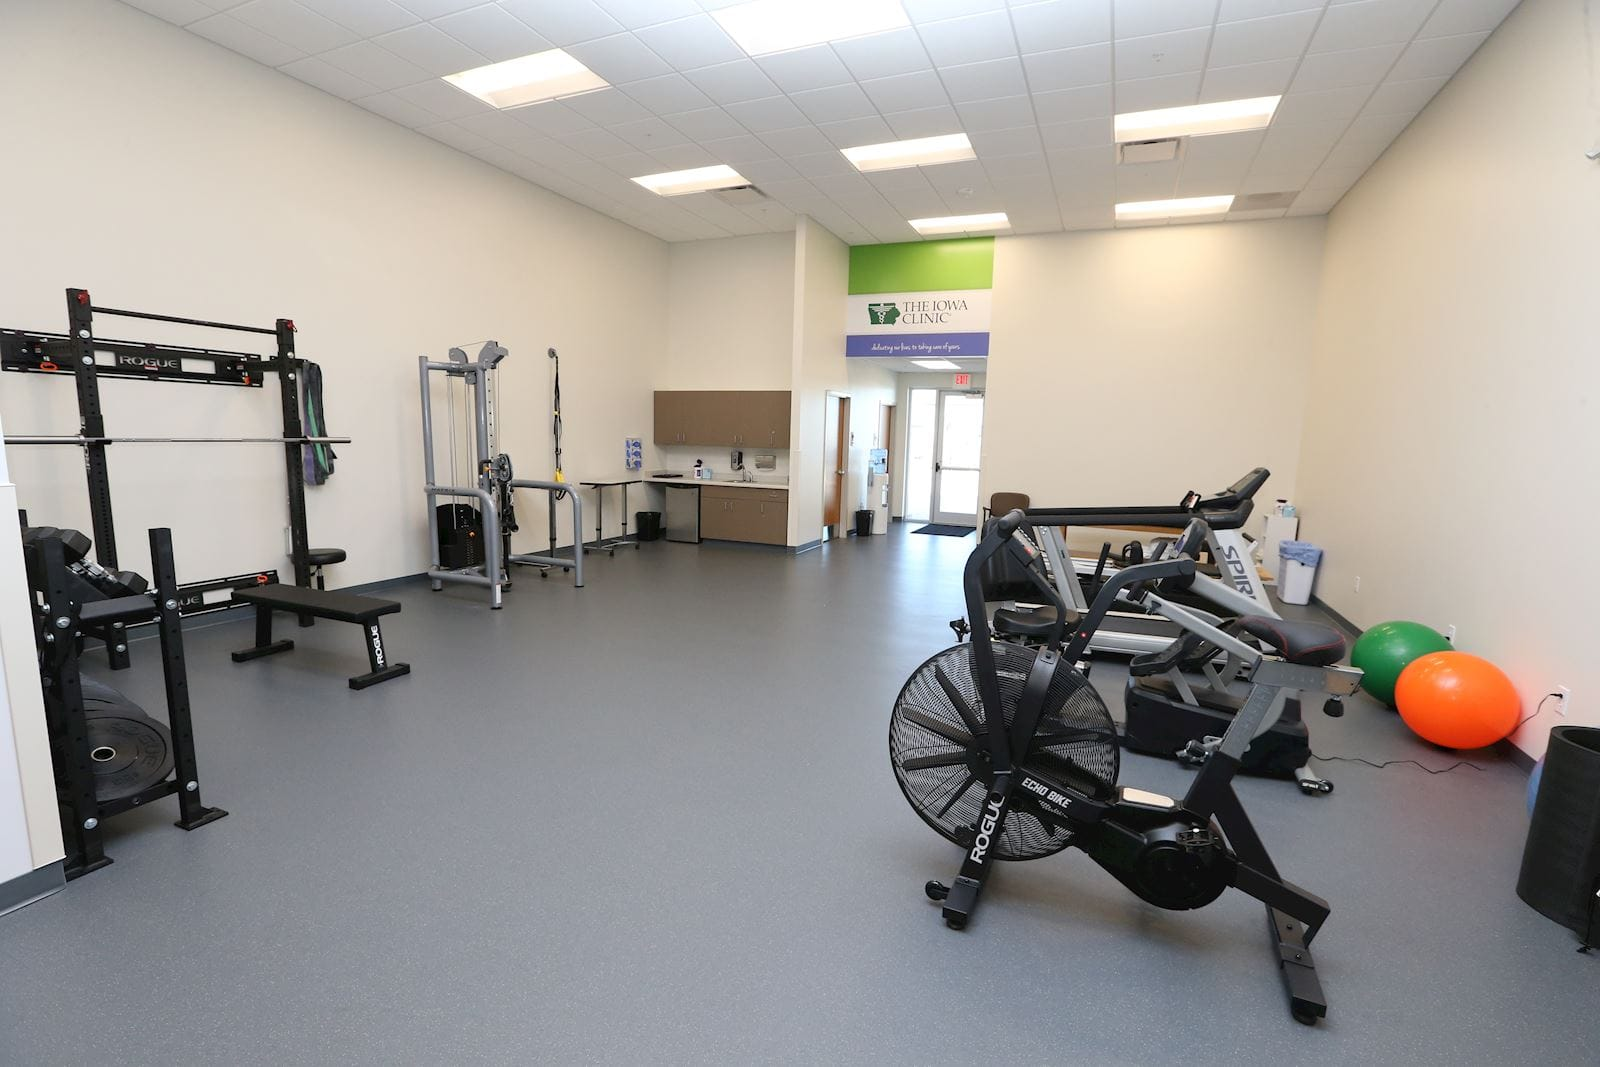 Waukee Alice's Road Physical Therapy Room